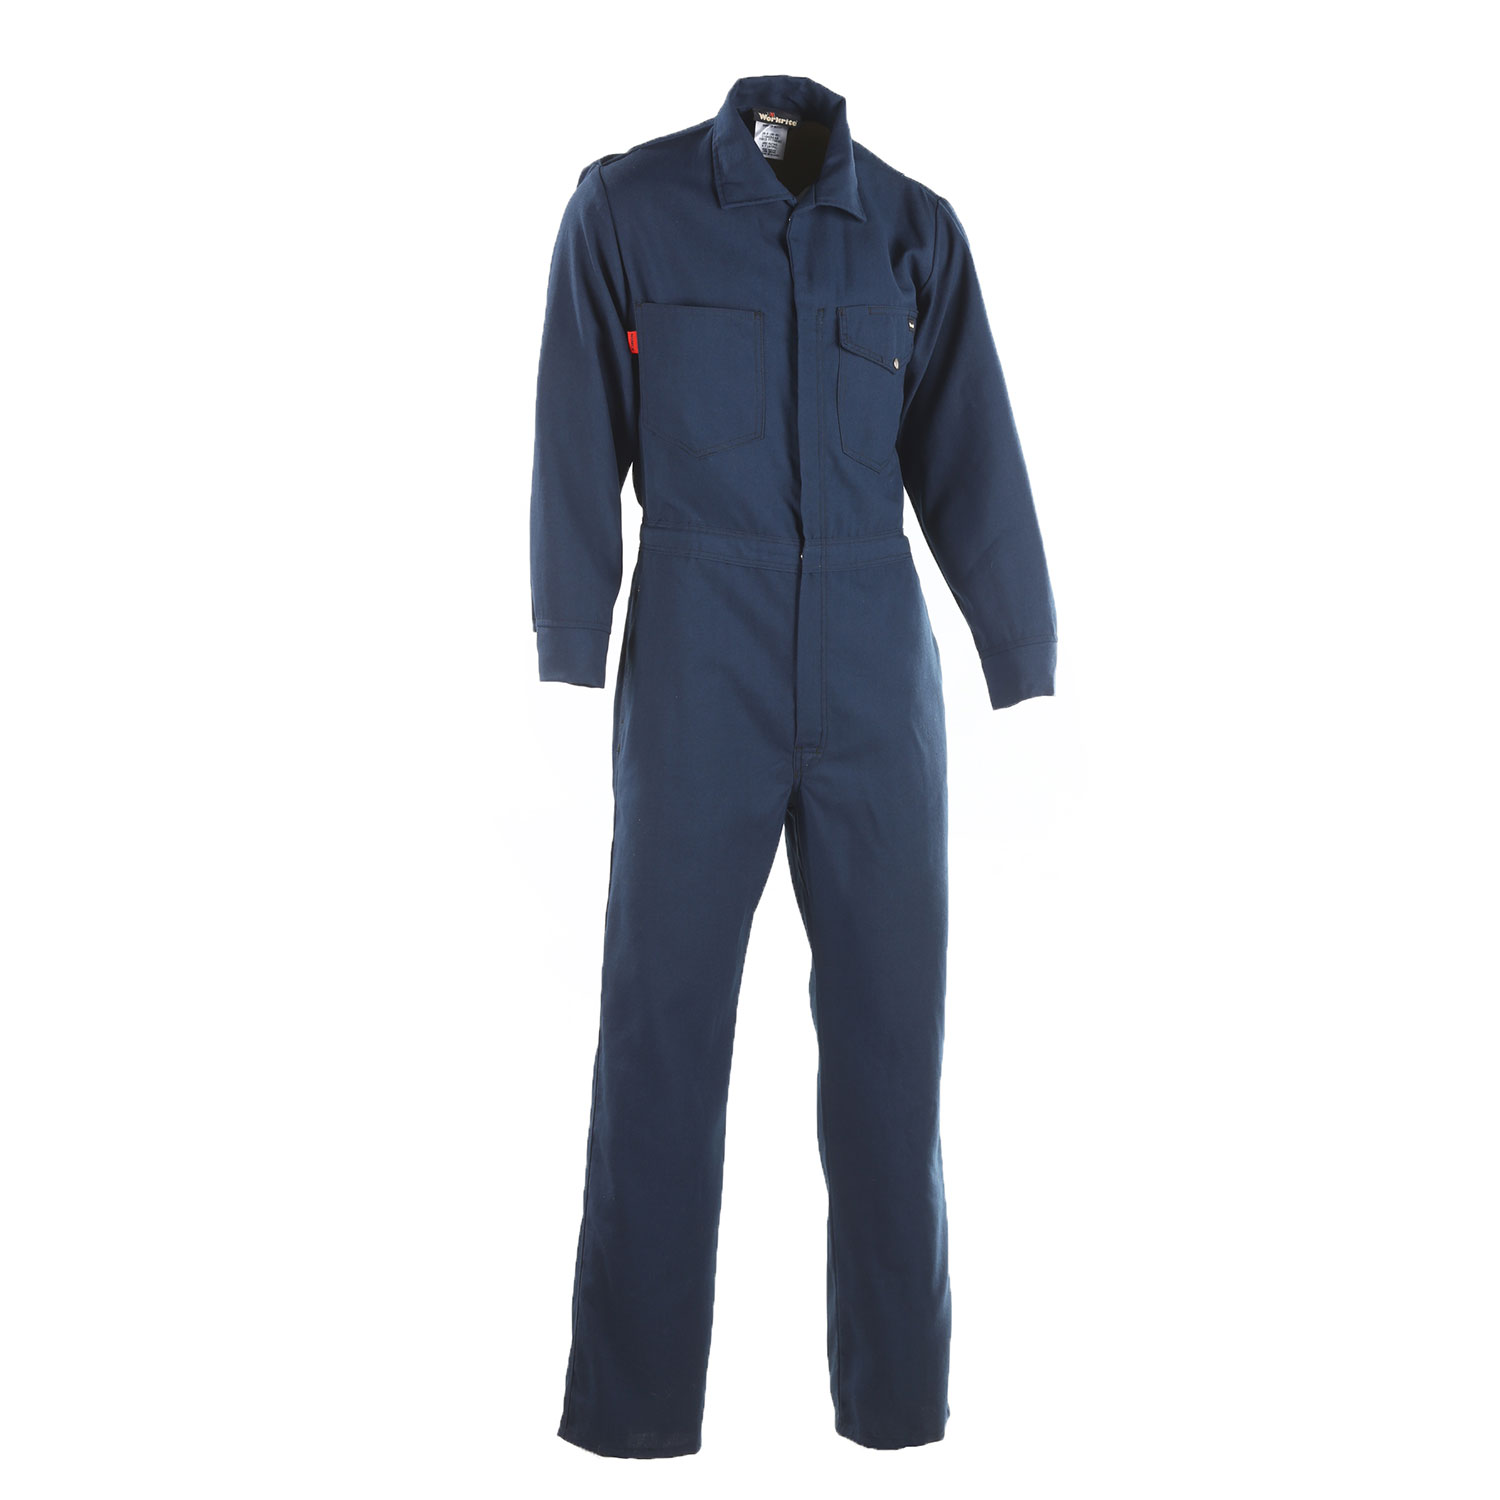 Workrite 6 oz. Nomex IIIA Industrial Coverall